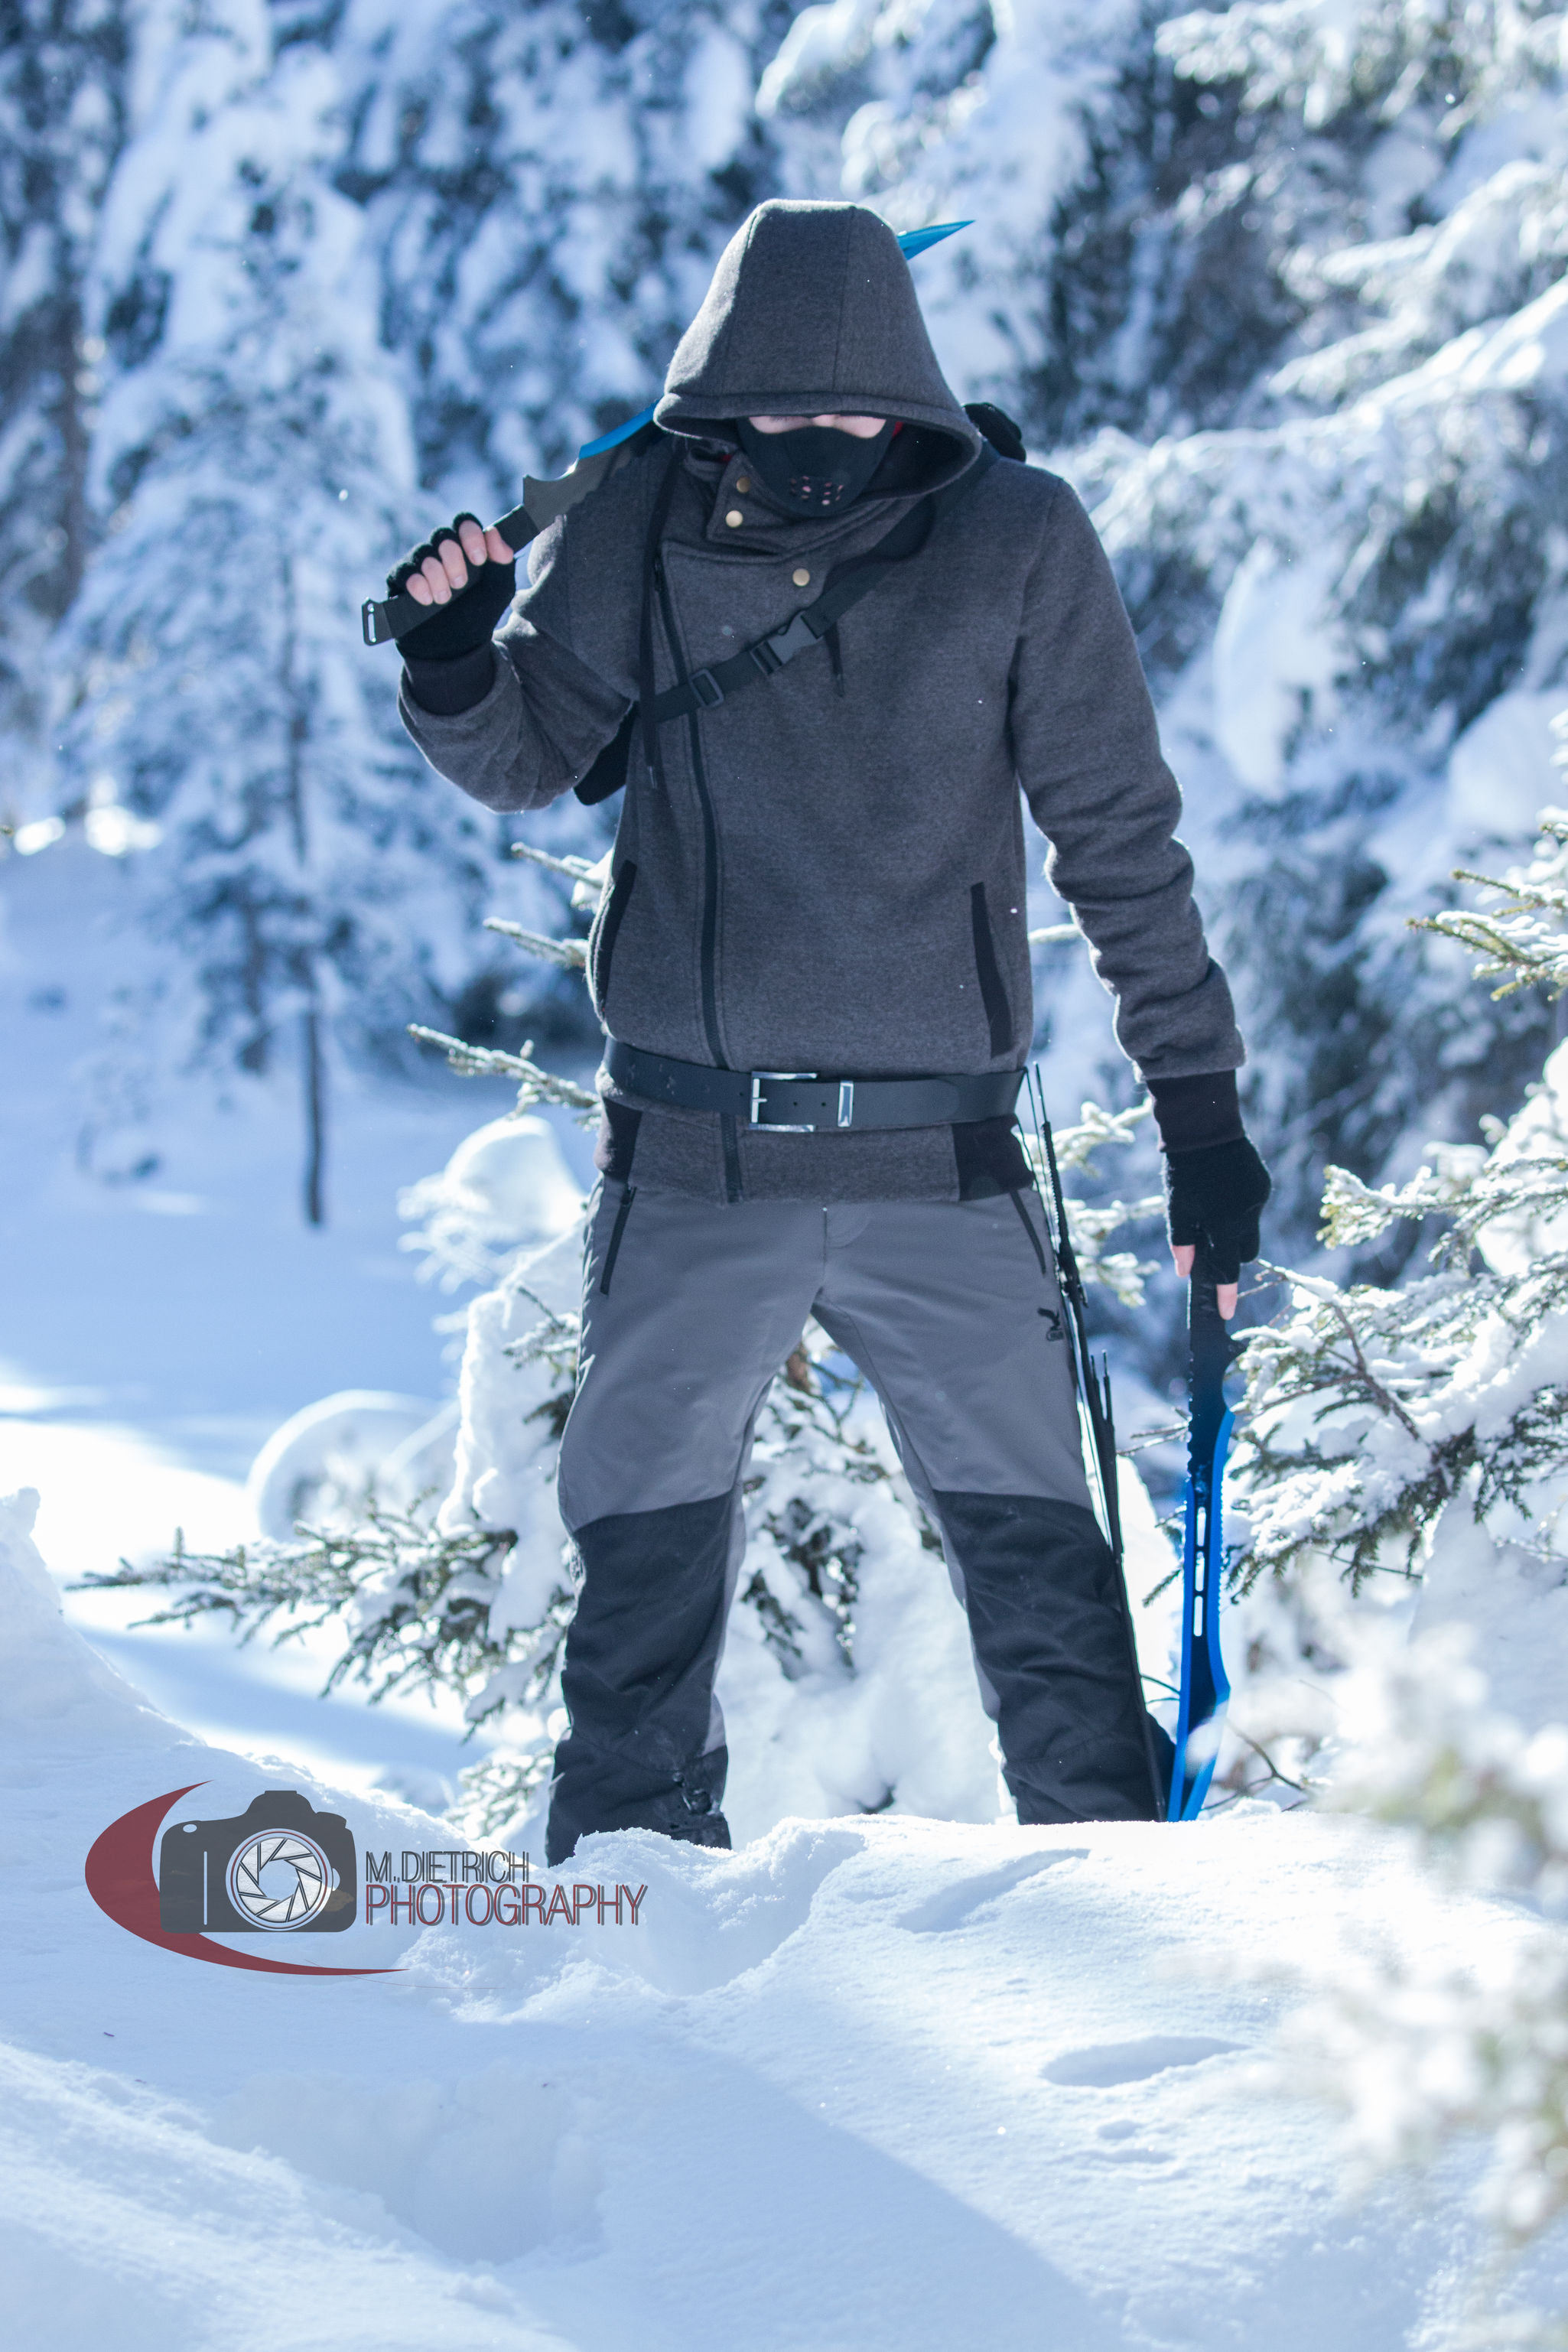 Assassine Canon 70d Canonphotography Cold Temperature Cosplay Foto Fotografie People Photo Photography Photography In Motion Photoshoot Snow Winter